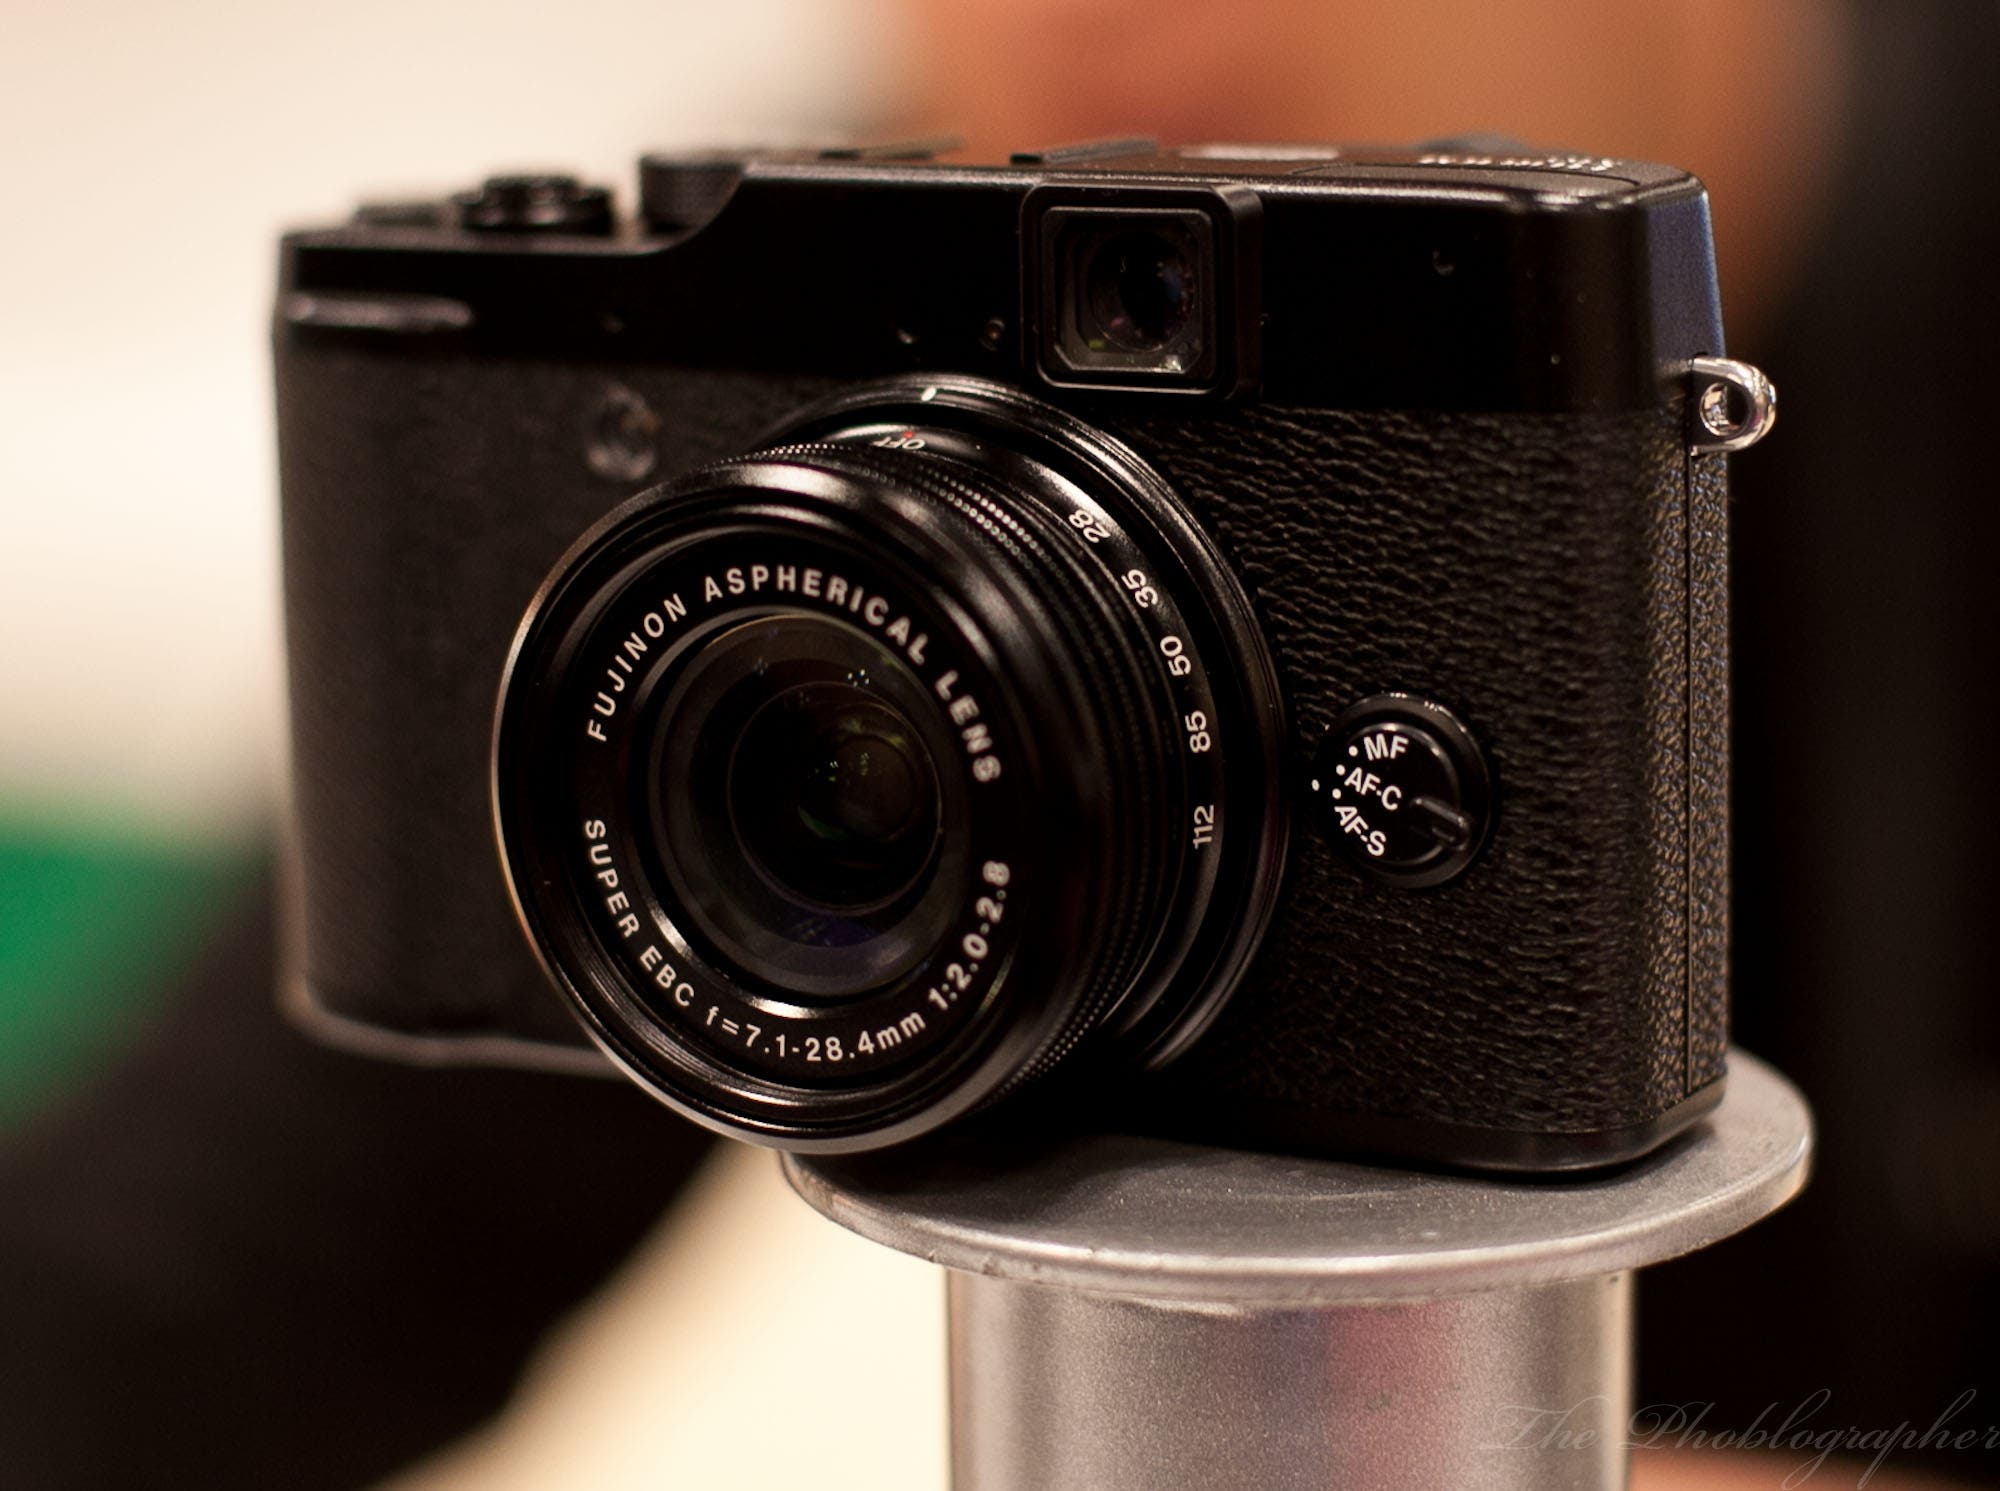 EXCLUSIVE Hands On Review: Shooting a Party with the Fuji X10